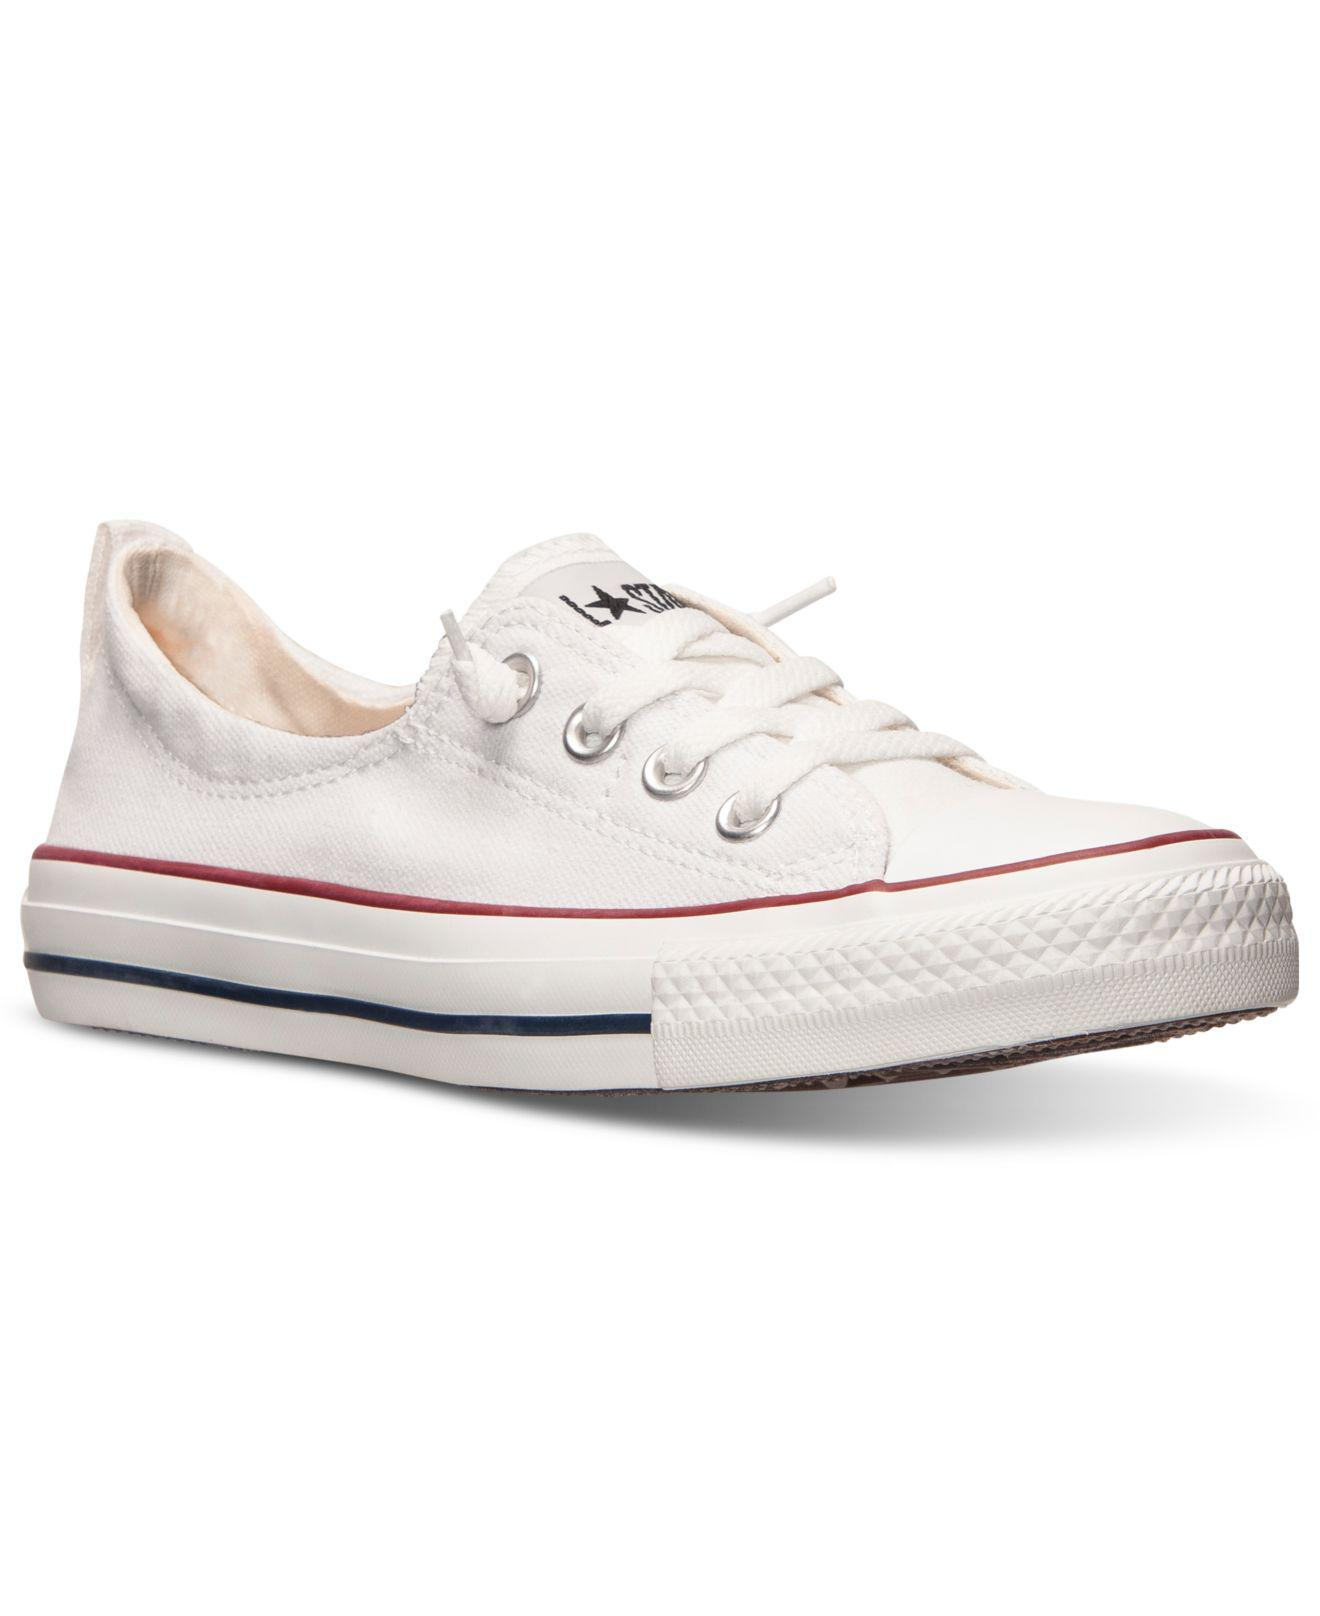 912c076dd5a Lyst - Converse Women s Chuck Taylor Shoreline Casual Sneakers From ...